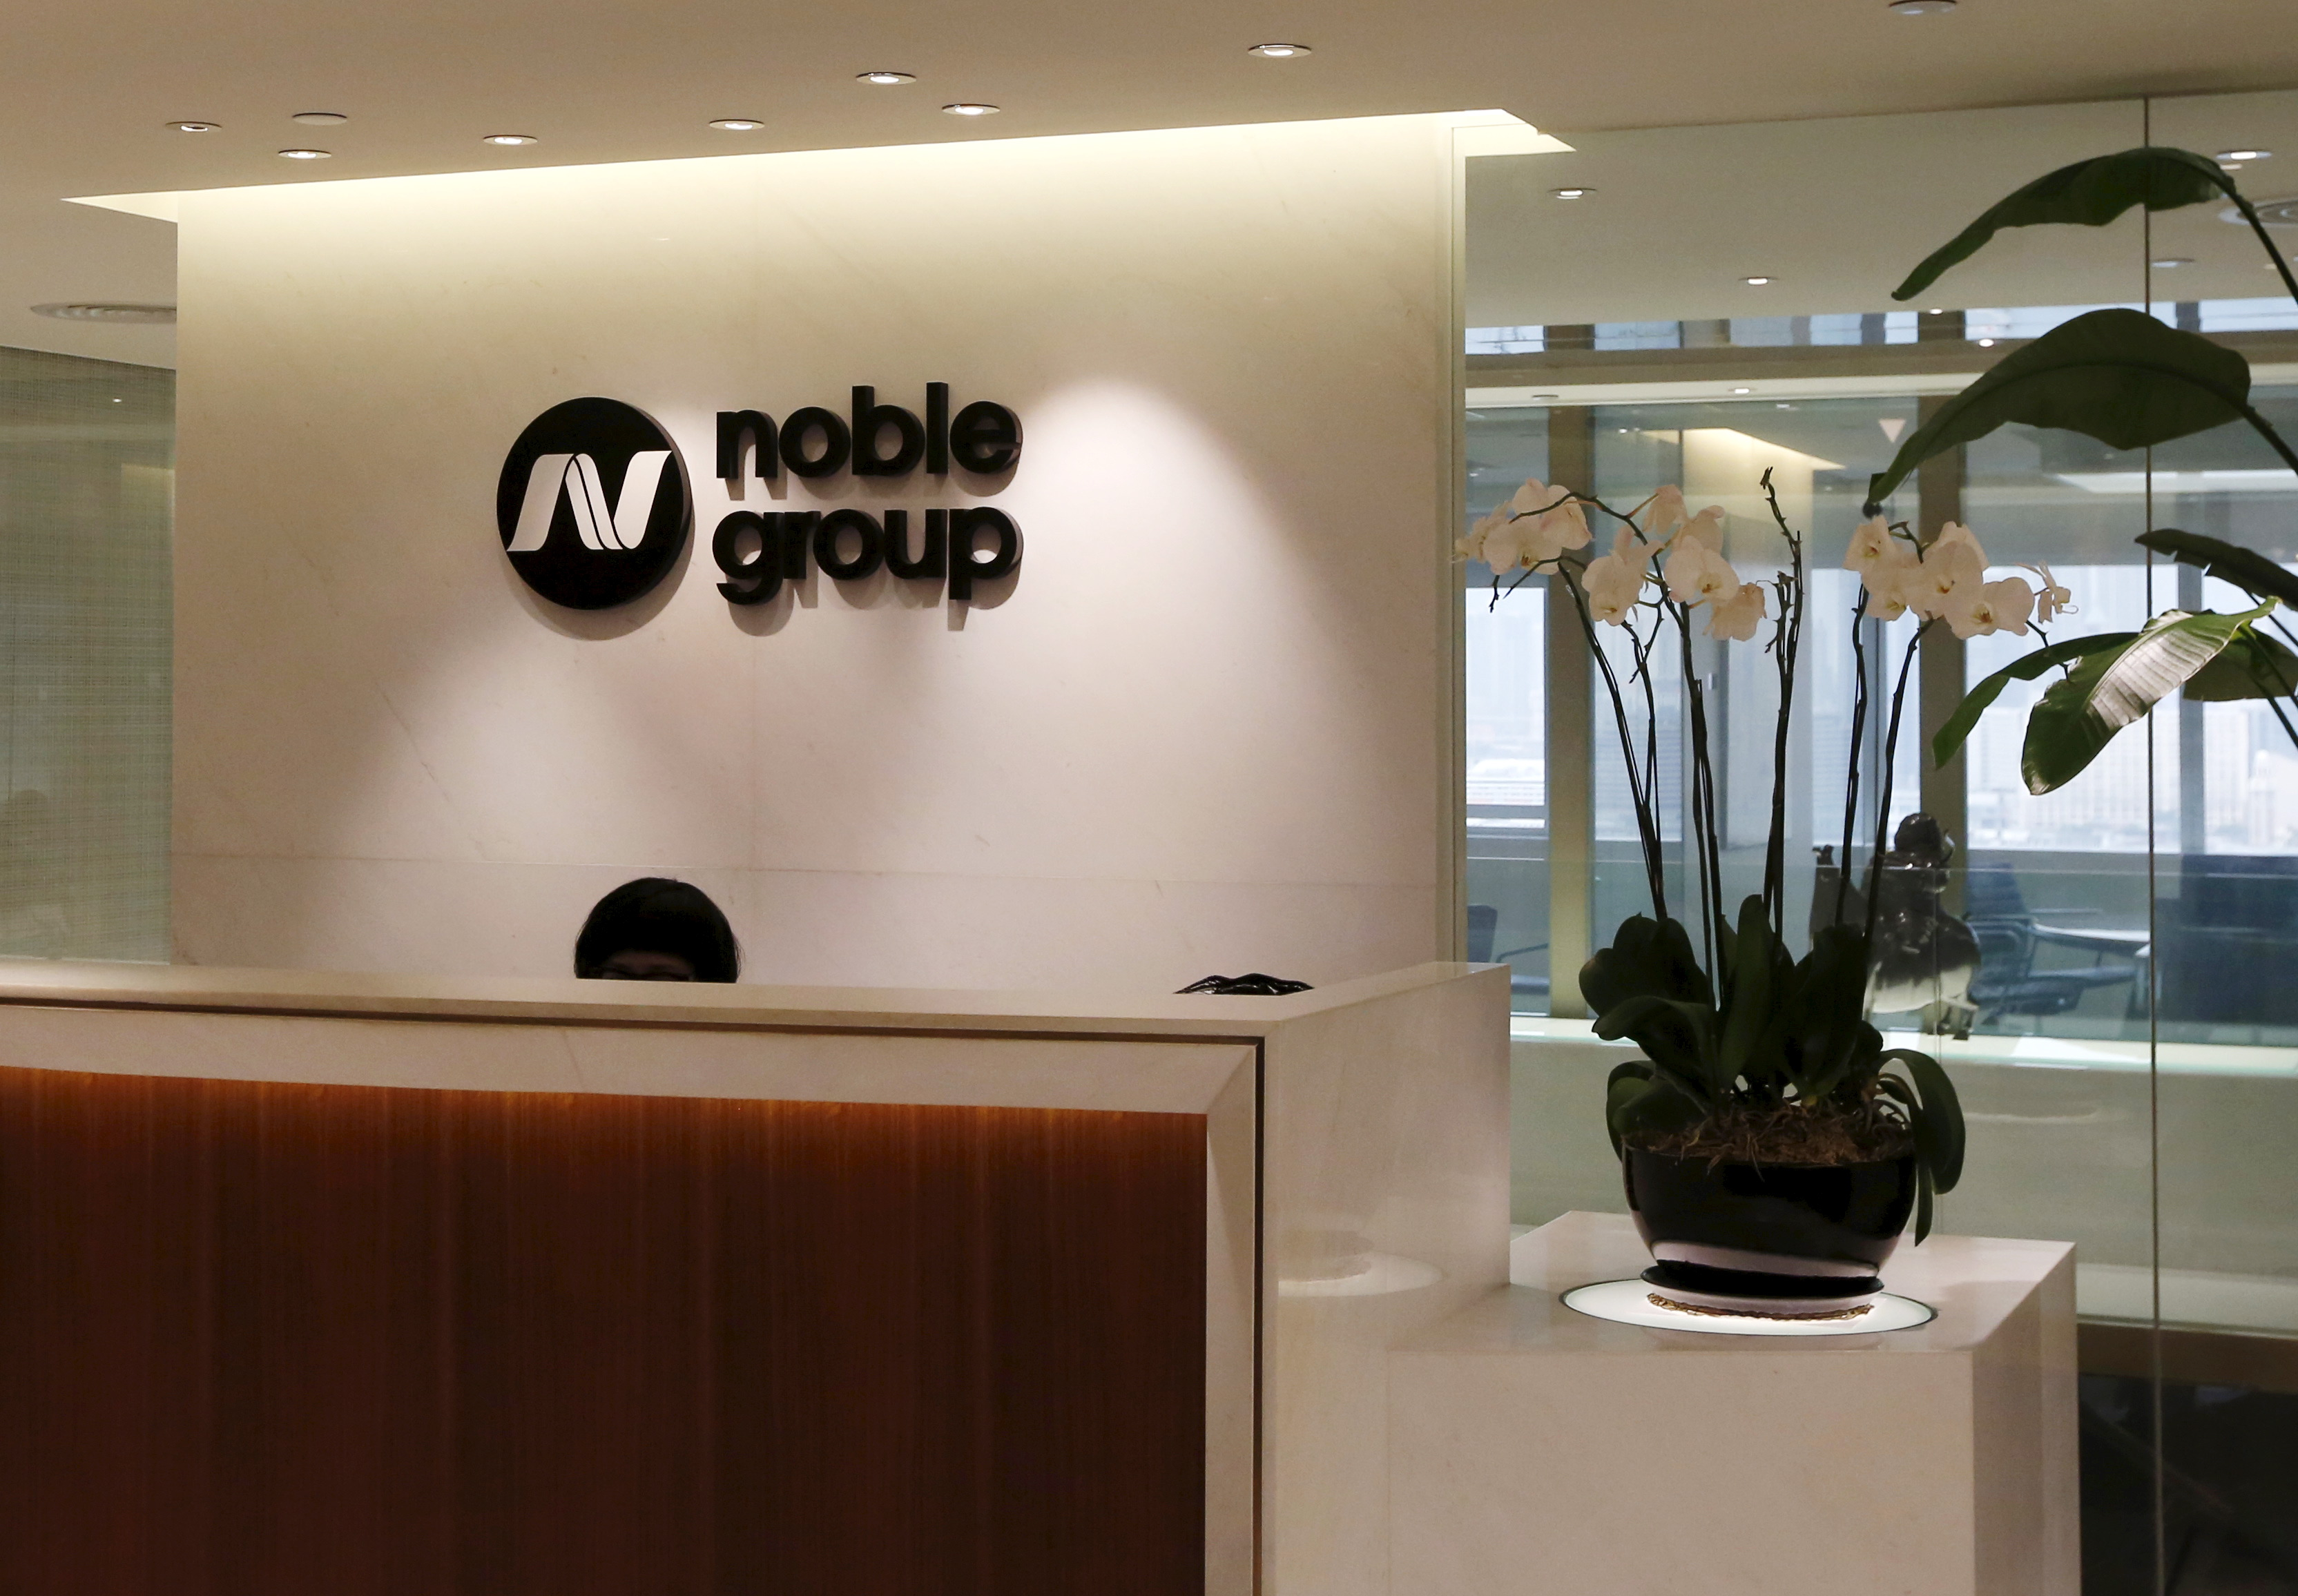 The reception of Noble Group is seen at its headquarters in Hong Kong